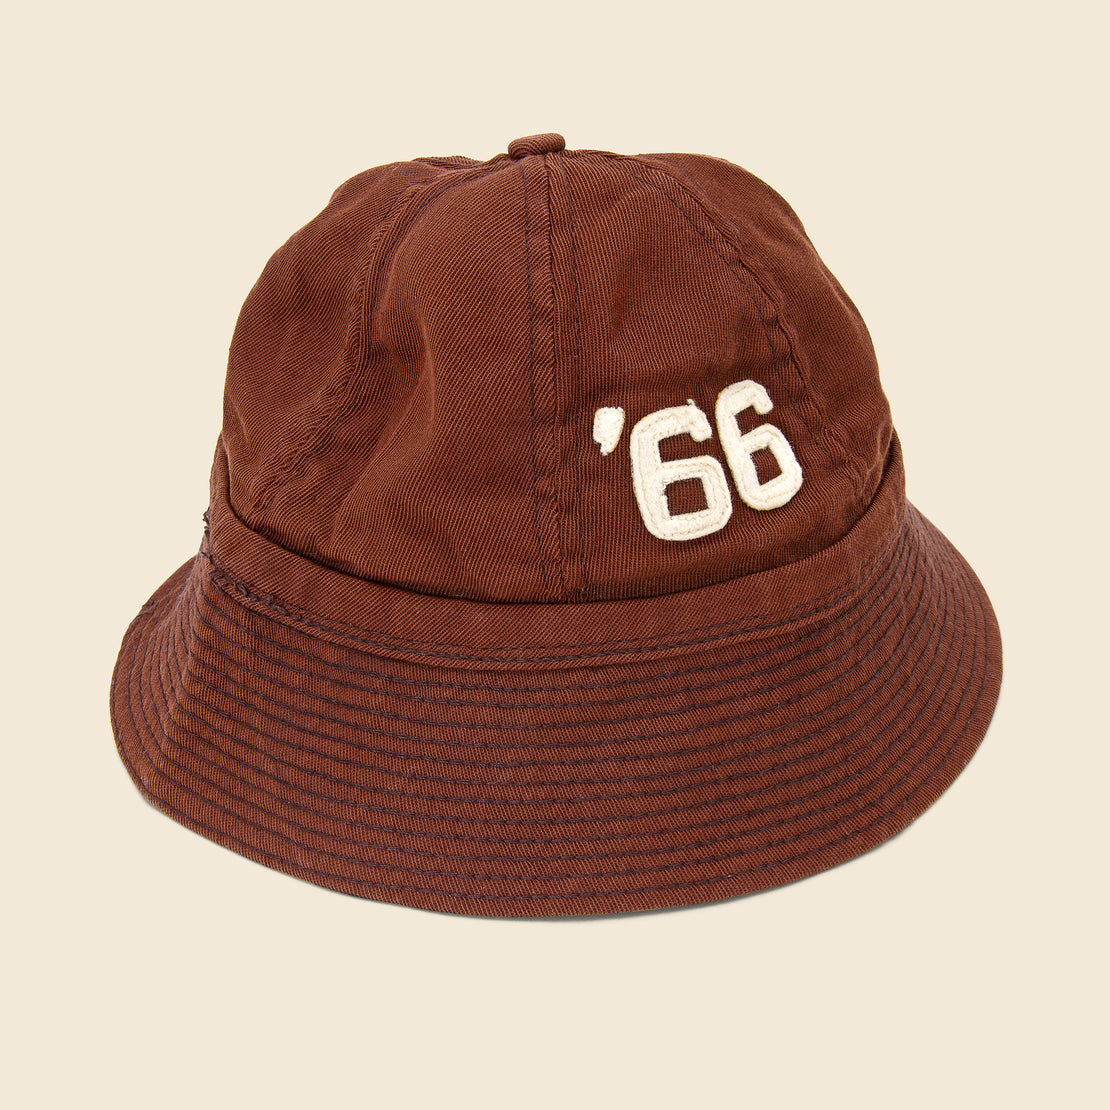 "Vintage Cotton Felt Embroidered Bucket Hat - ""66"""